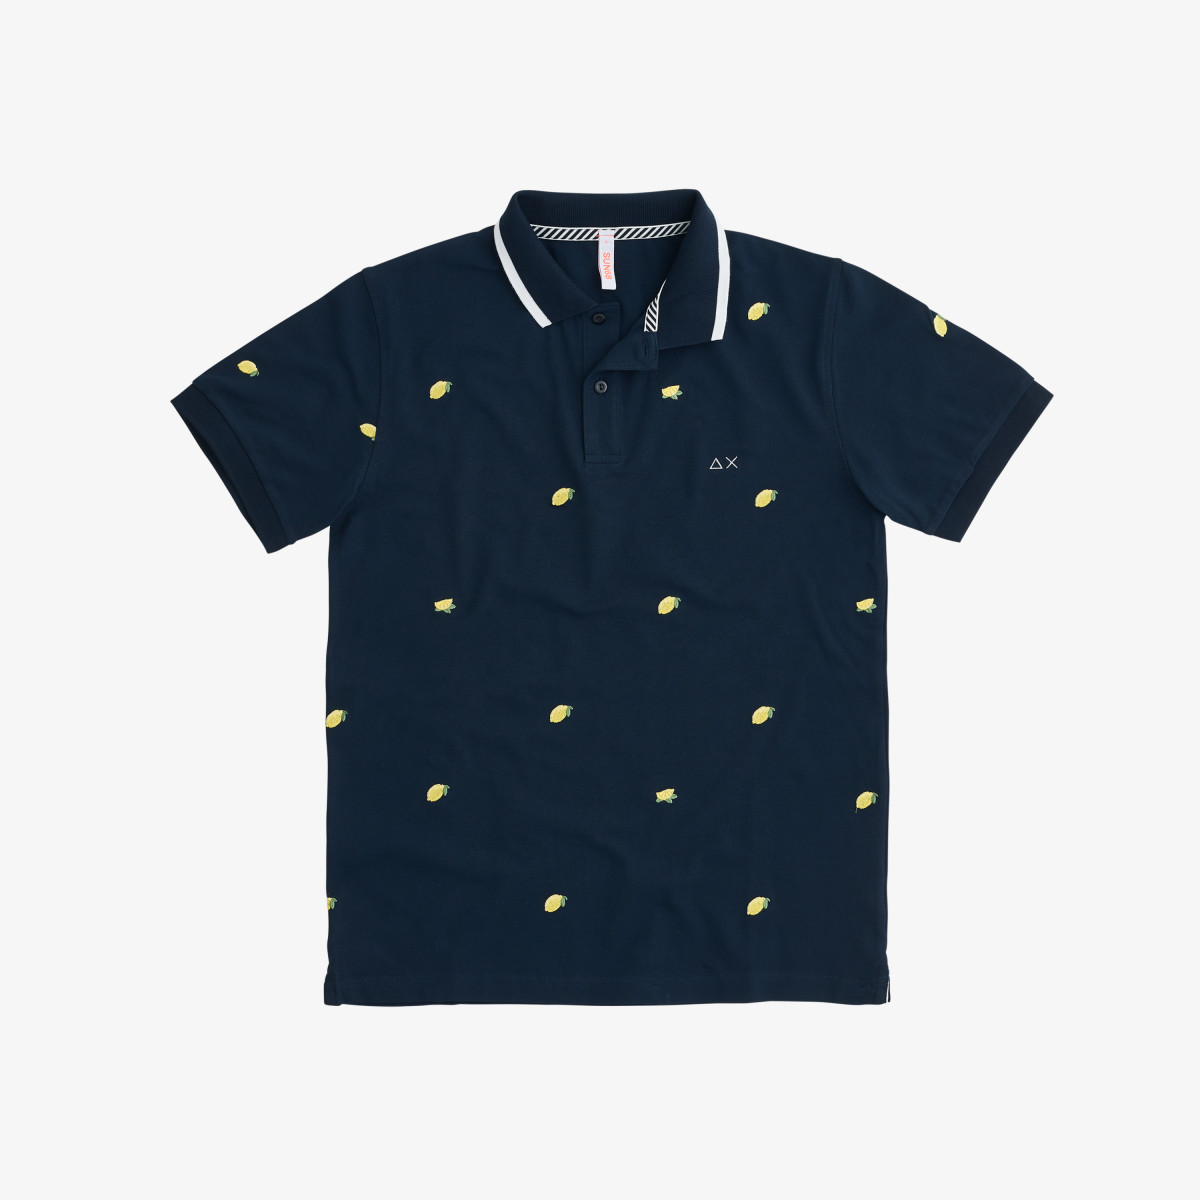 POLO FULL EMBRODERY EL. NAVY BLUE